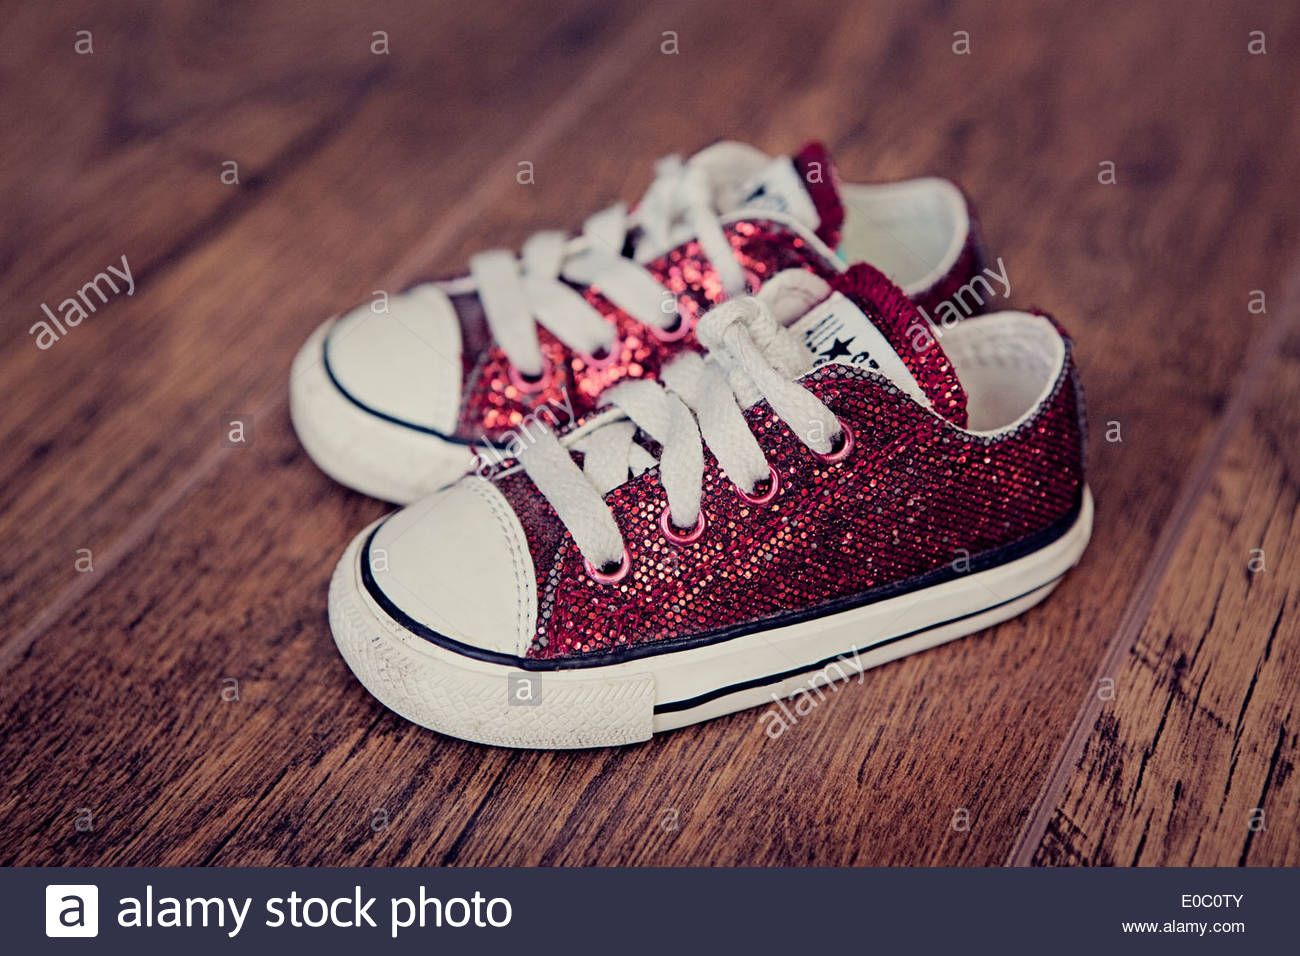 A pair of small, red, baby Converse shoes on a wooden floor. - Stock Image